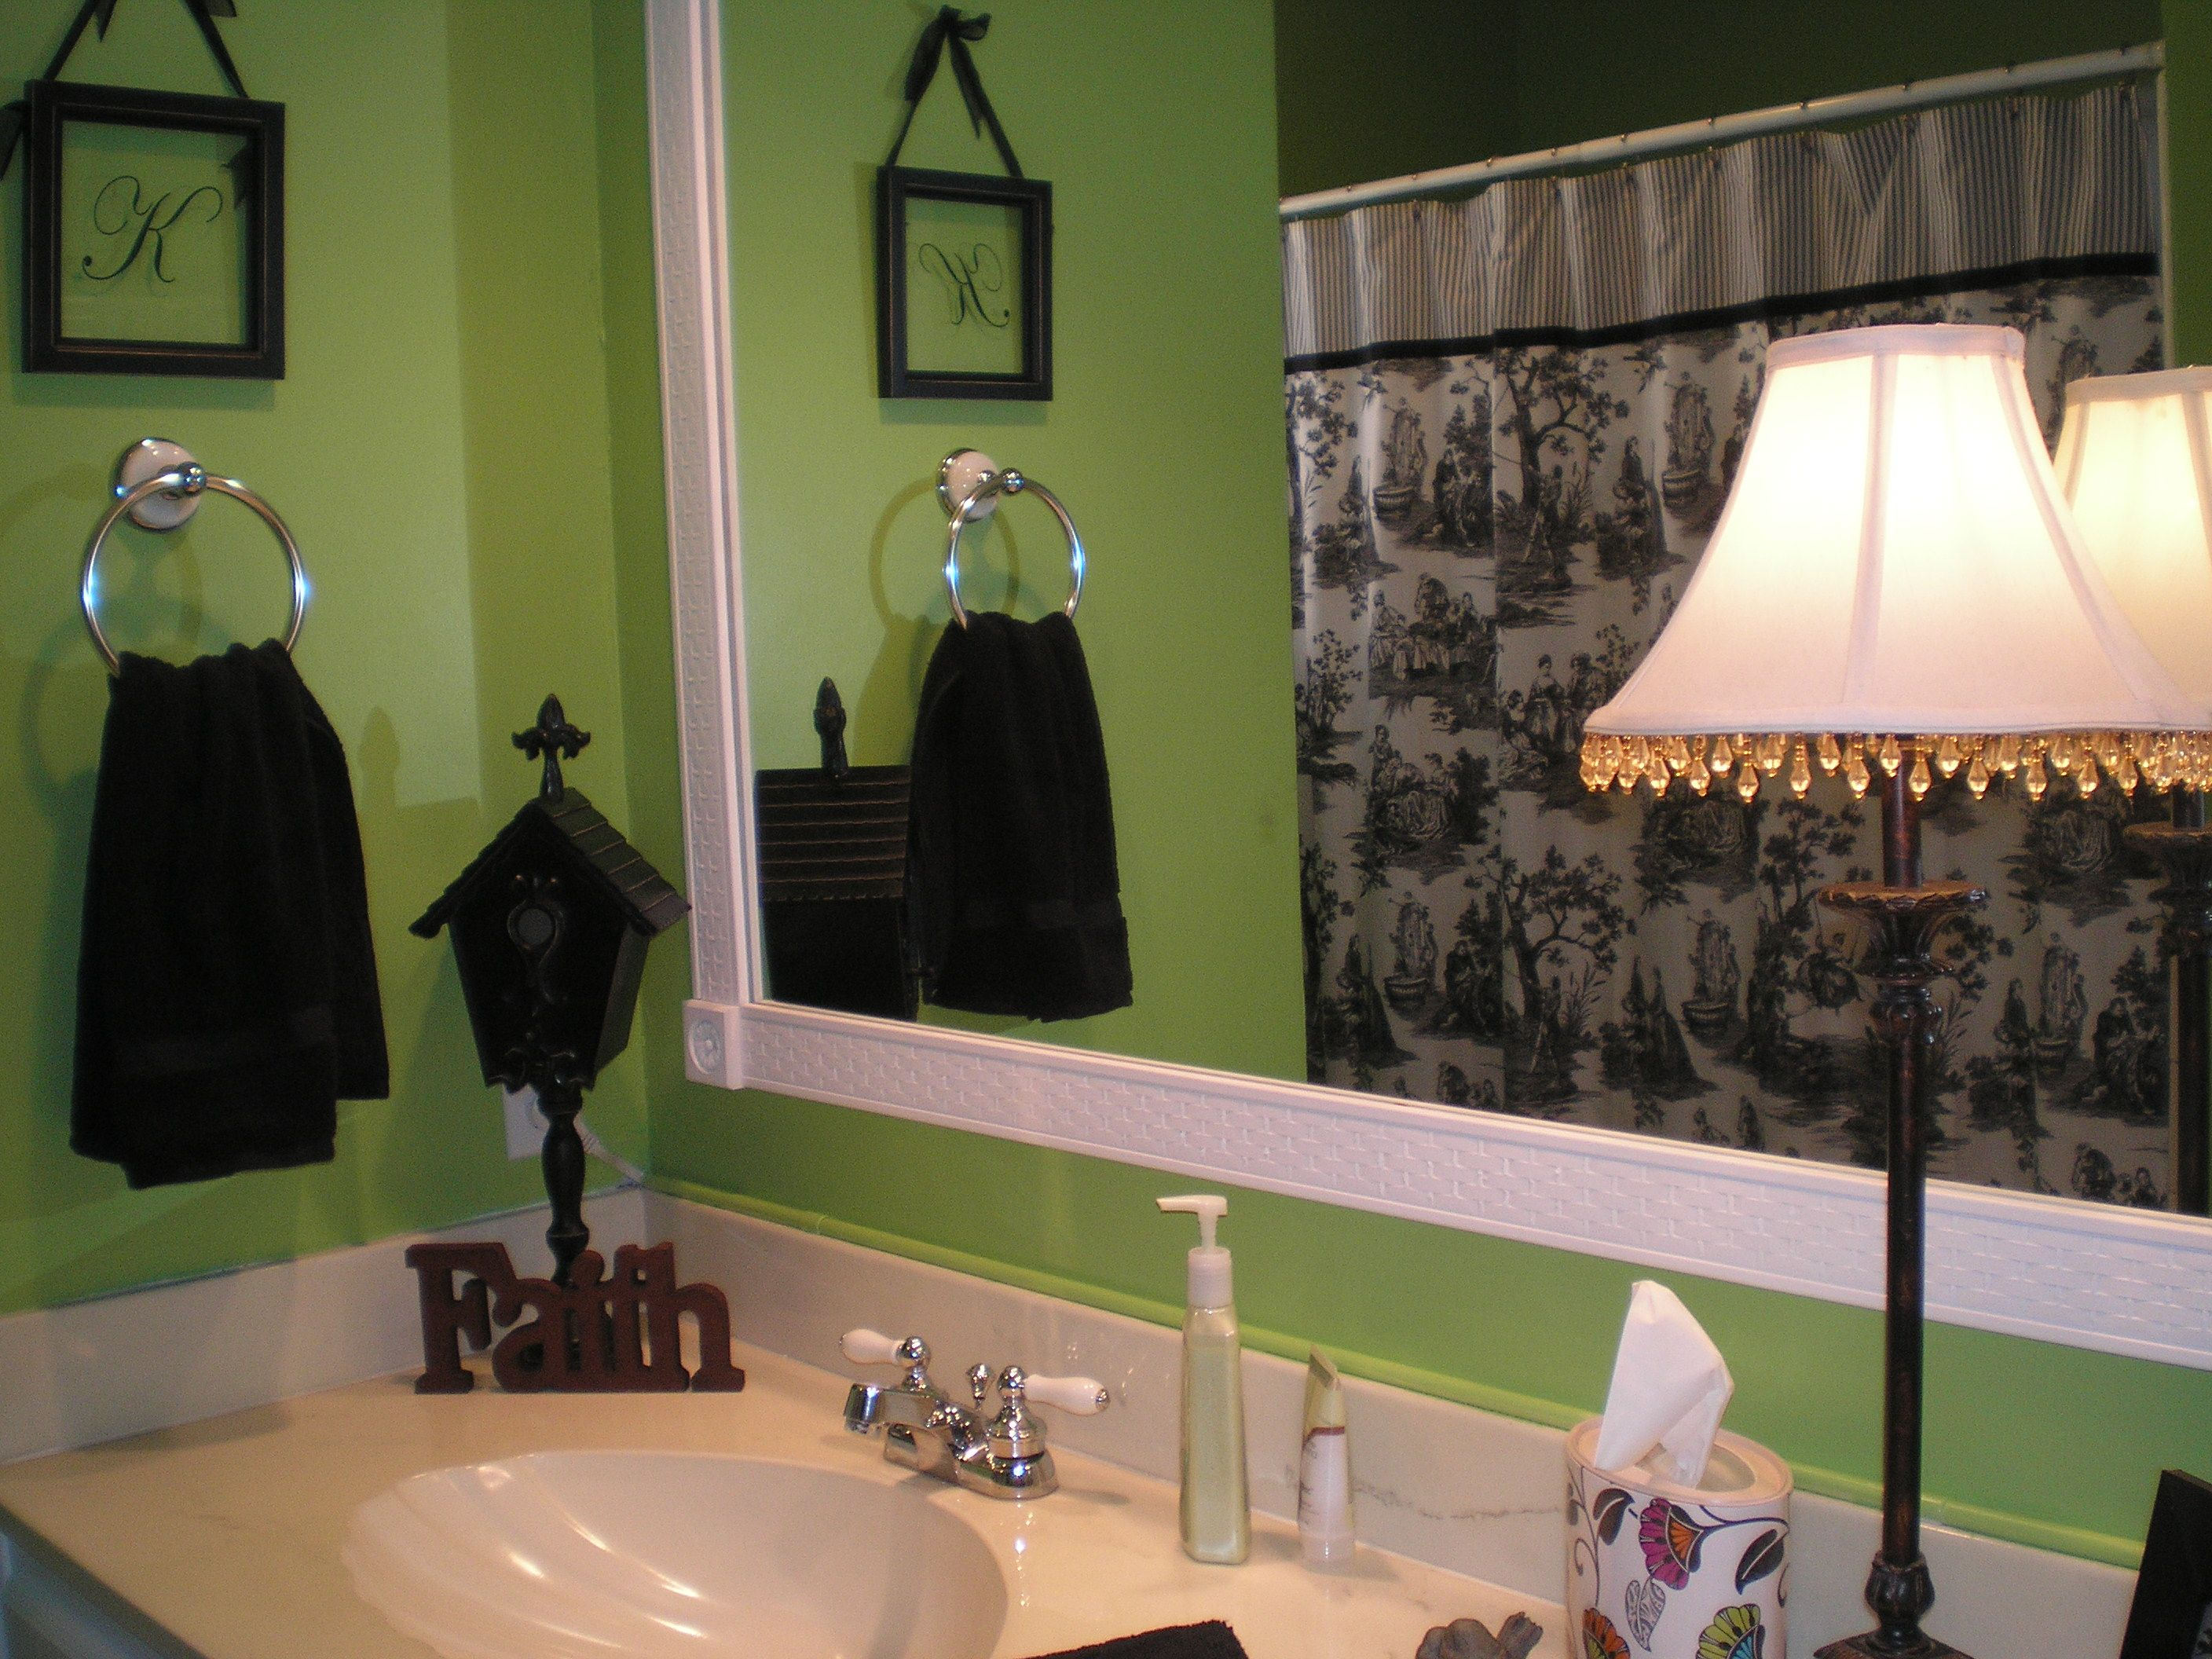 Green and white bathroom - My Lime Green Bathroom With Black White And Red Accents I Switch Out The